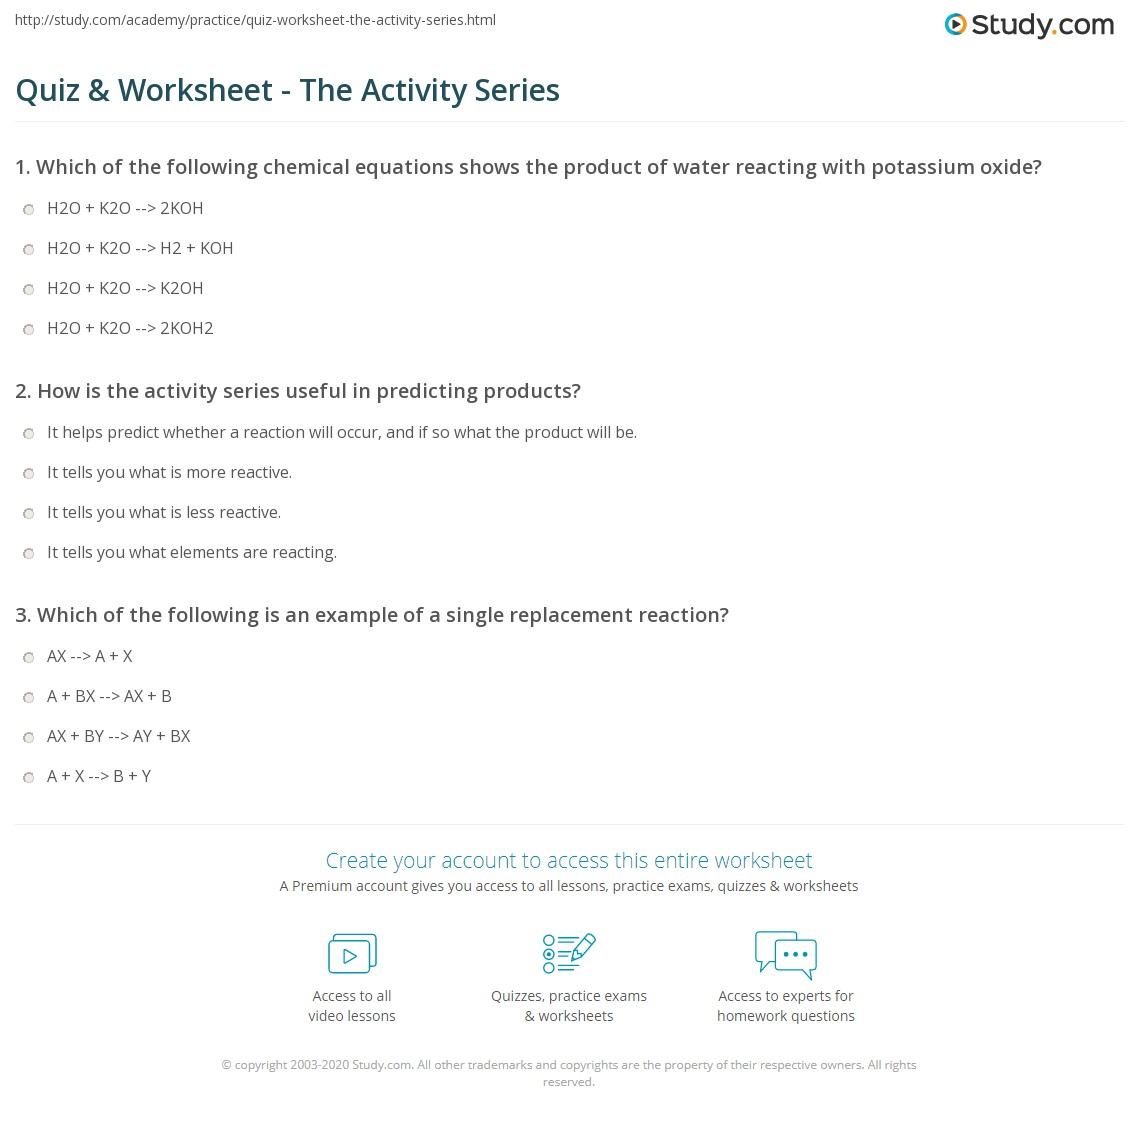 Aldiablosus  Picturesque Quiz Amp Worksheet  The Activity Series  Studycom With Lovely Print The Activity Series Predicting Products Of Single Displacement Reactions Worksheet With Lovely Inferencing Worksheets Nd Grade Also Vocational Skills Worksheets In Addition Numbers In Spanish Worksheet And Preschool Alphabet Worksheet As Well As Following Instructions Worksheet Additionally Phonograms Worksheets From Studycom With Aldiablosus  Lovely Quiz Amp Worksheet  The Activity Series  Studycom With Lovely Print The Activity Series Predicting Products Of Single Displacement Reactions Worksheet And Picturesque Inferencing Worksheets Nd Grade Also Vocational Skills Worksheets In Addition Numbers In Spanish Worksheet From Studycom